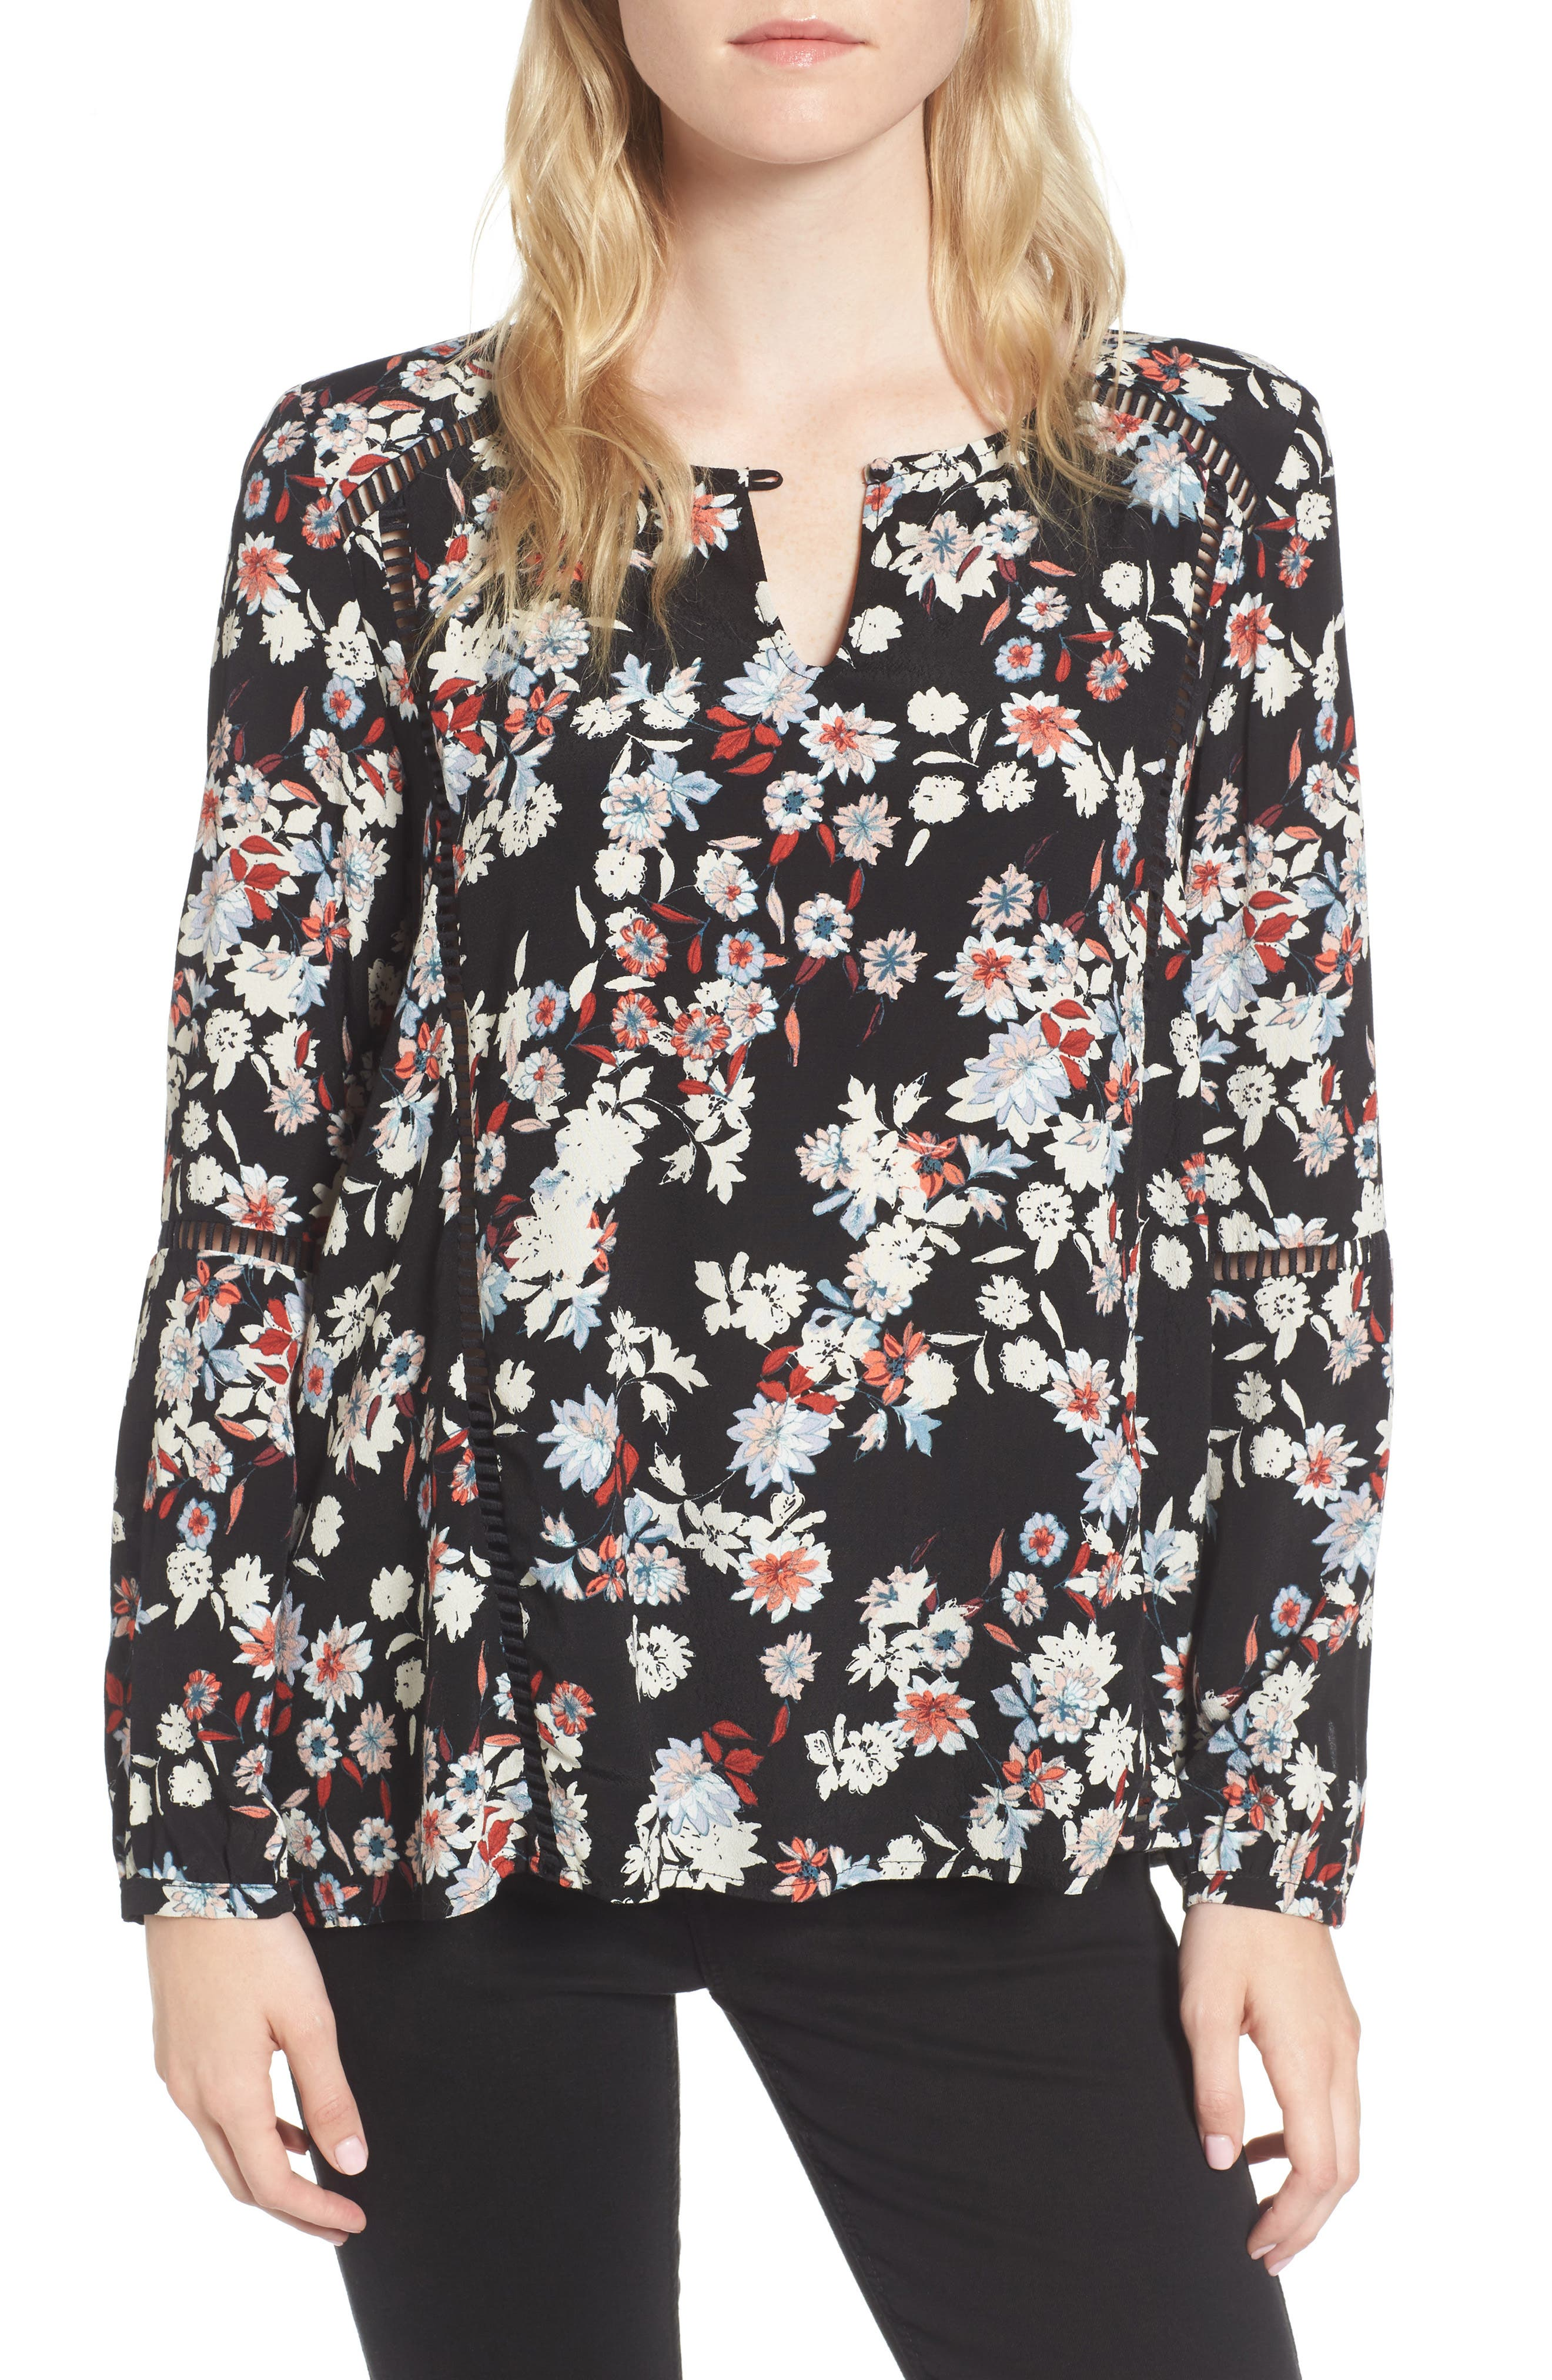 cupcakes and cashmere Kingsley Blouse